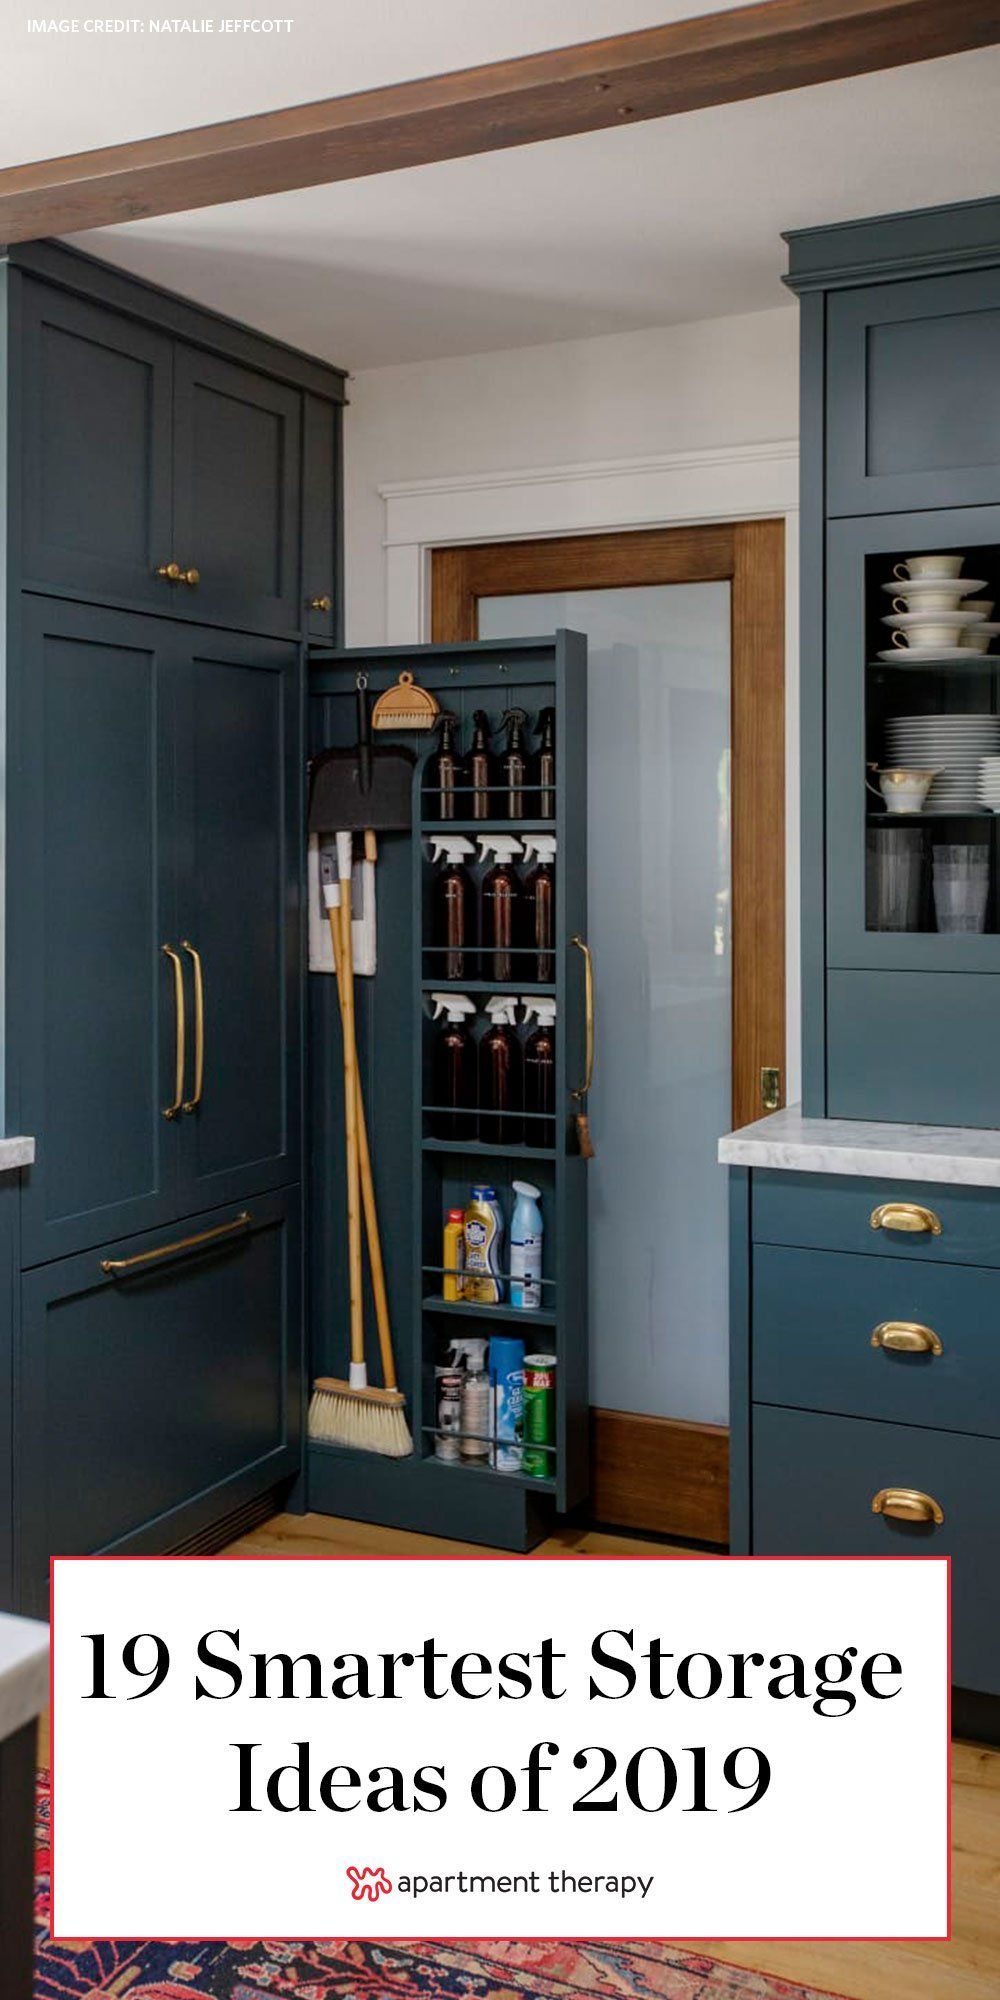 19 of the Smartest, Sexiest Storage Solutions We Saw in 2019